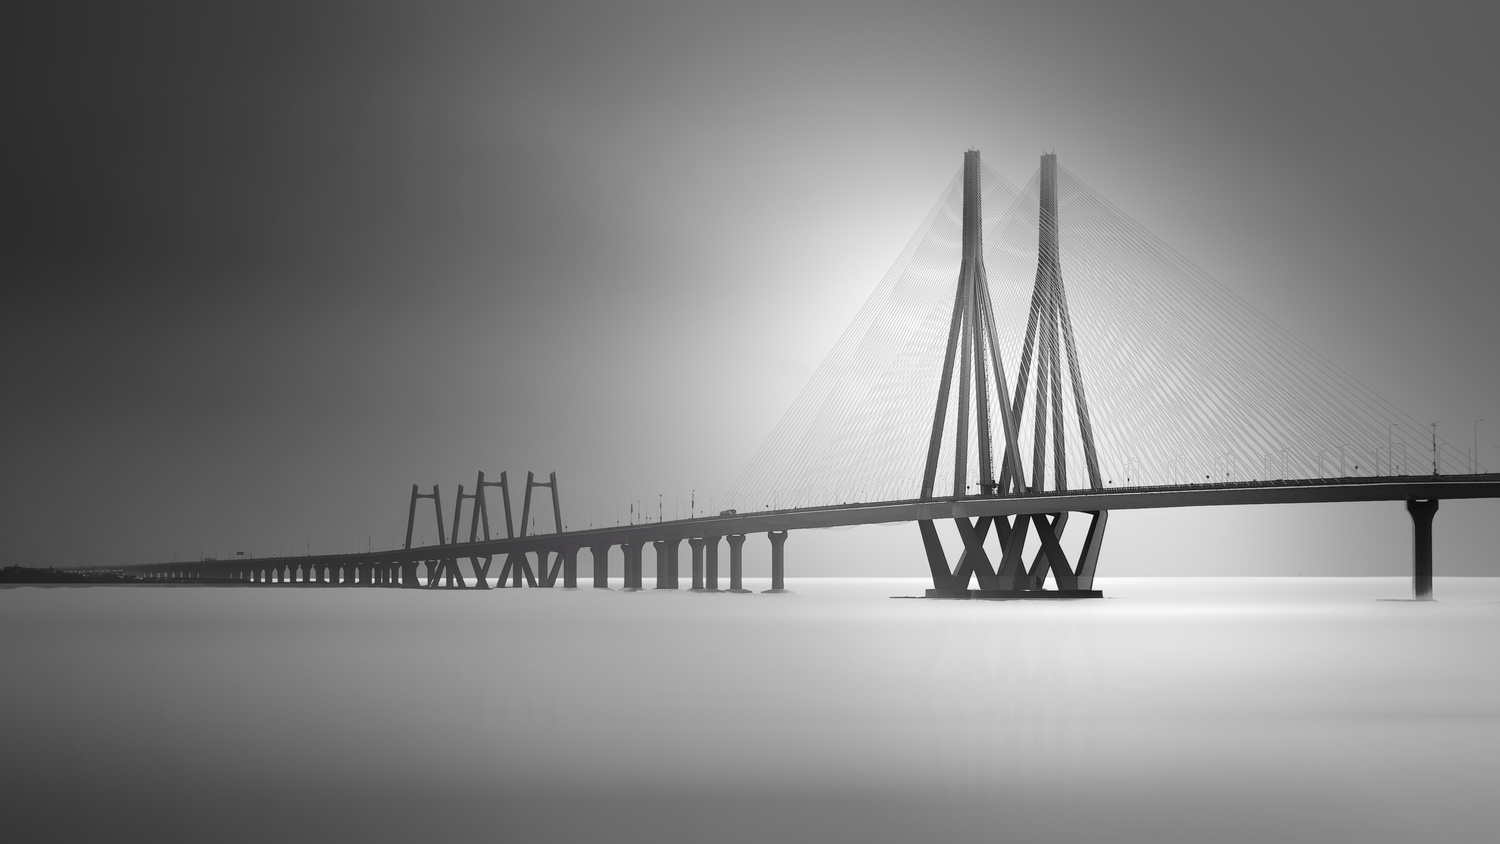 Sea Link by Saajan Manuvel